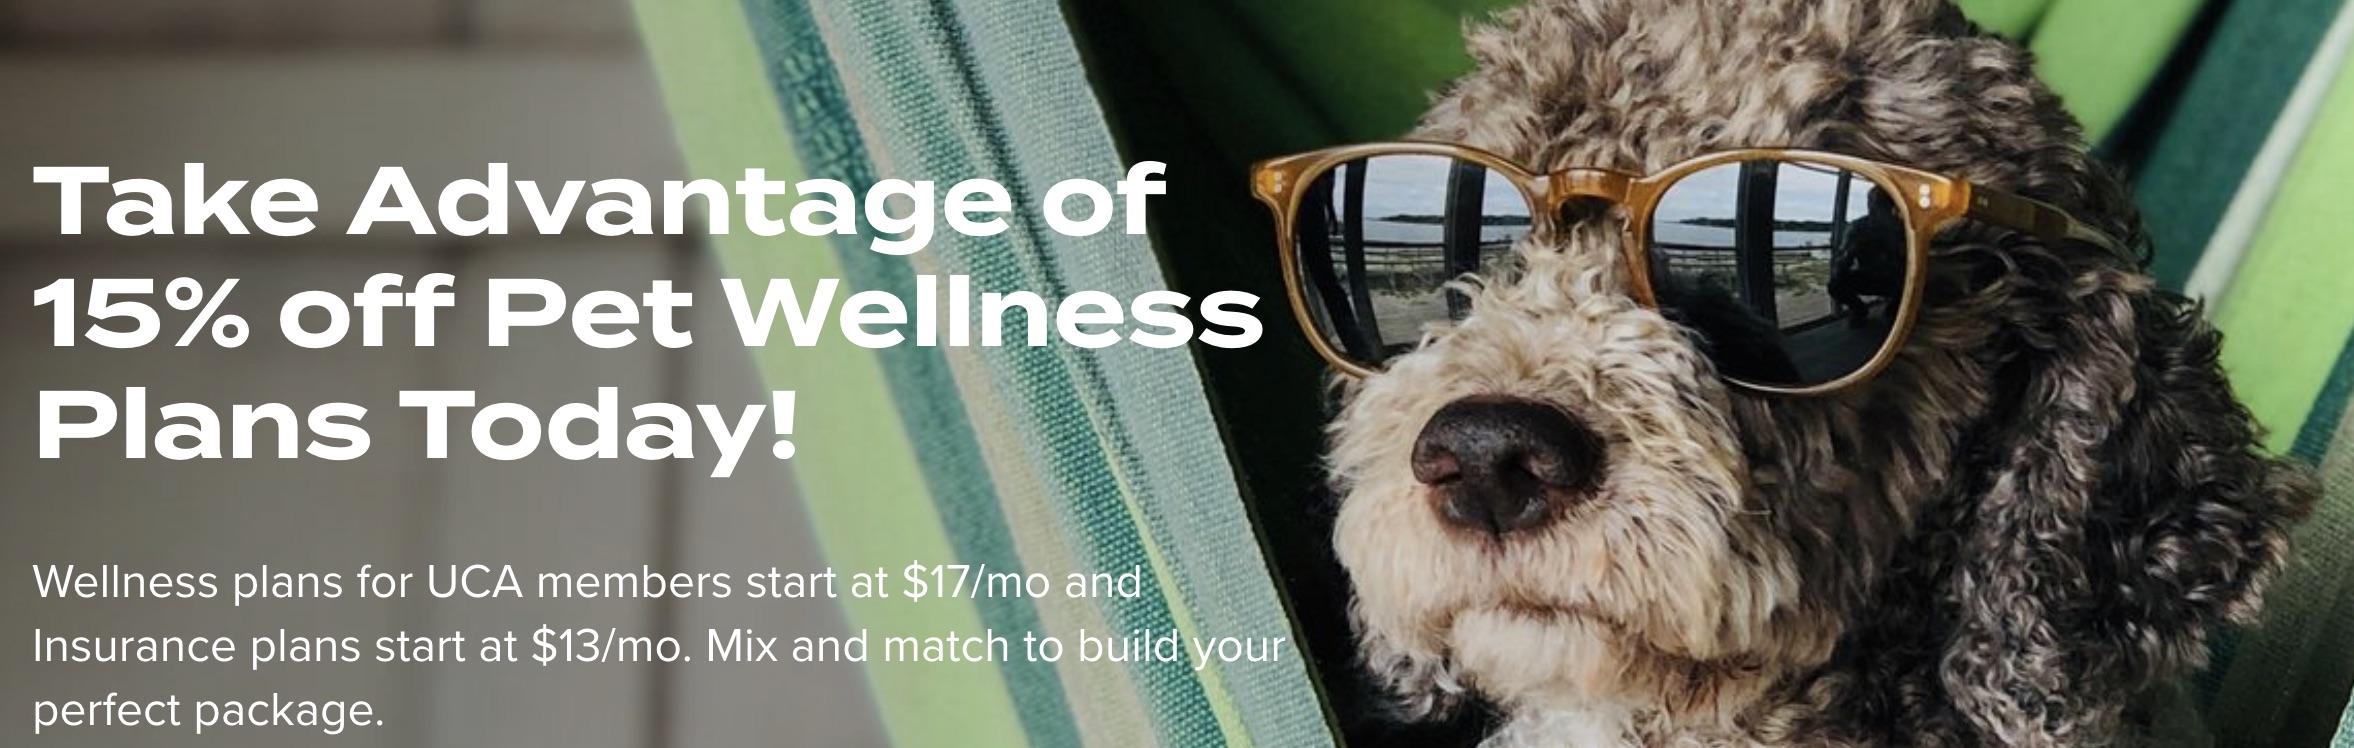 pet wellness with wagmo